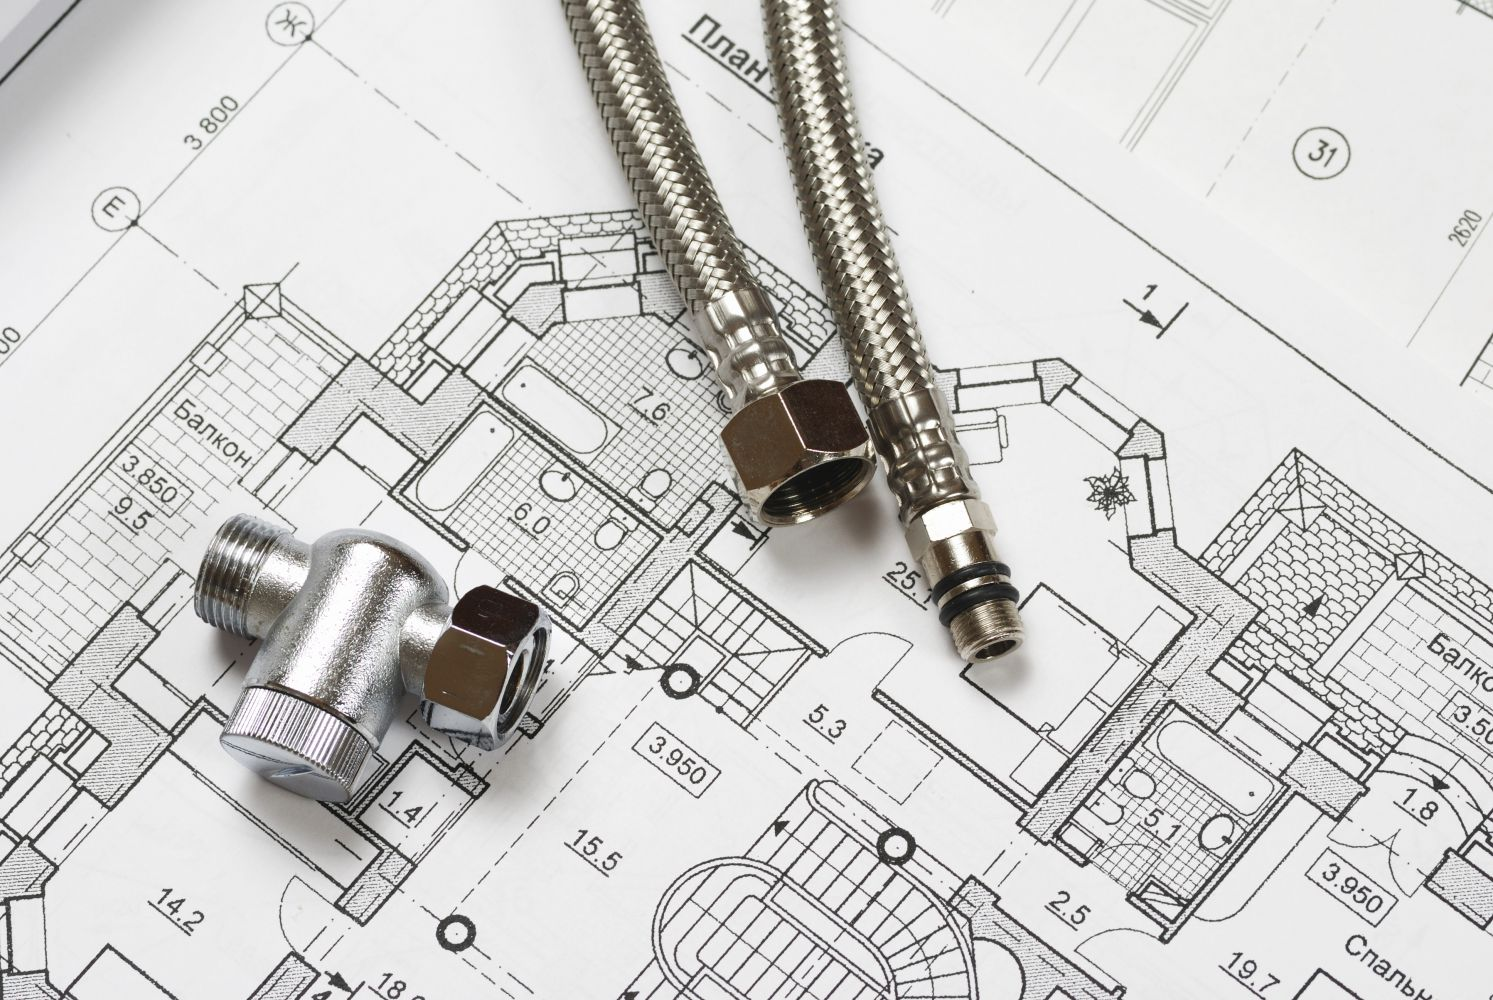 plumbing fittings and designs for contractors in Lexington, KY